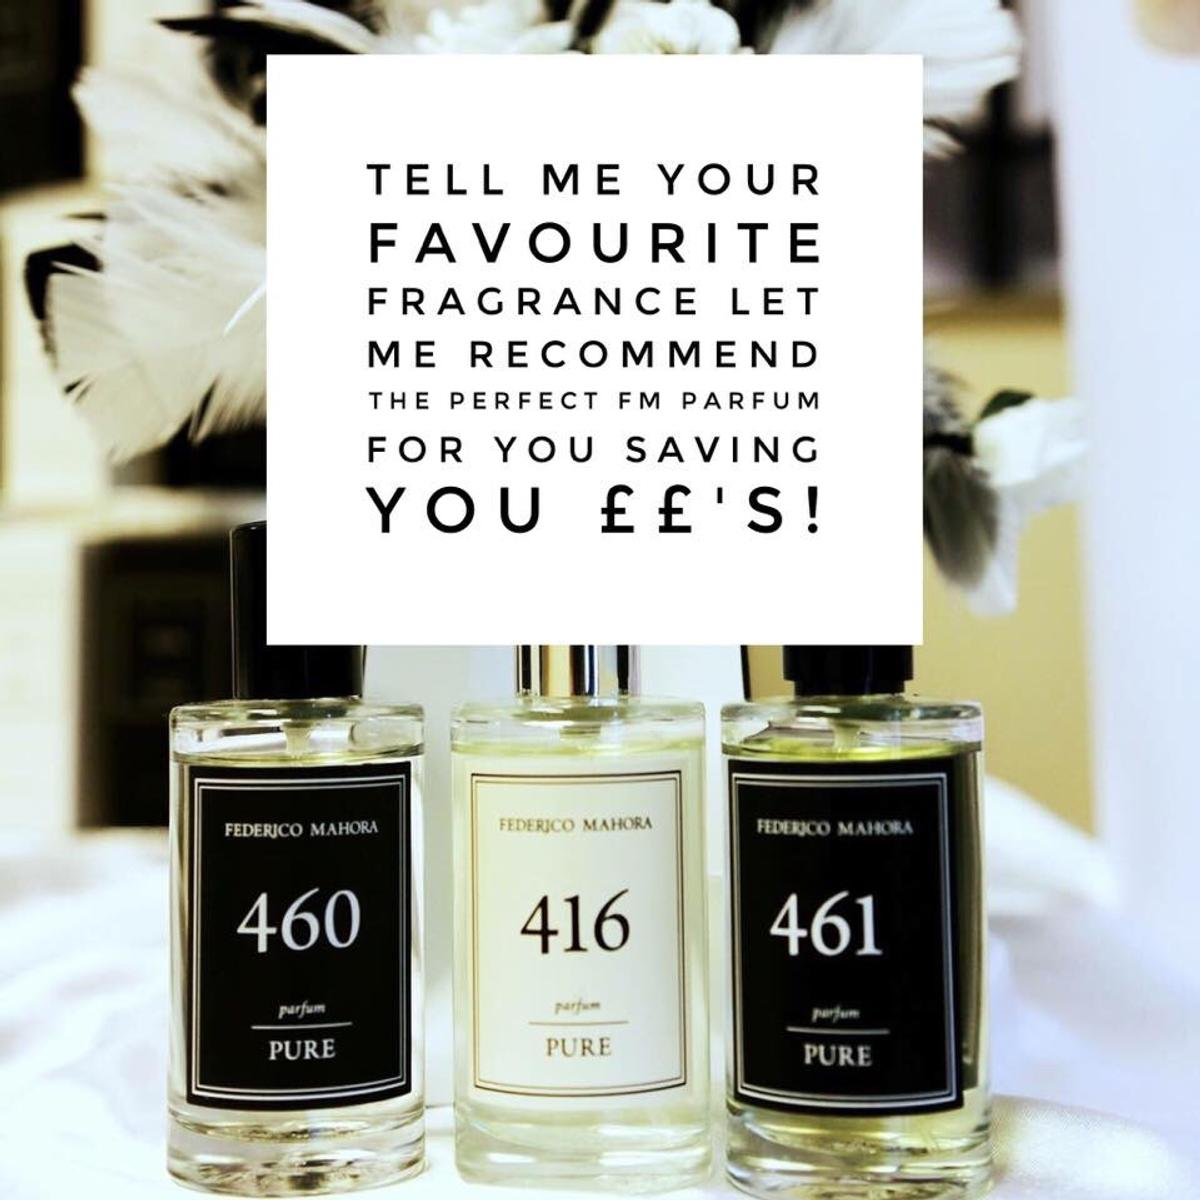 Federico Mahora Fragrances In De56 Valley For 1450 For Sale Shpock